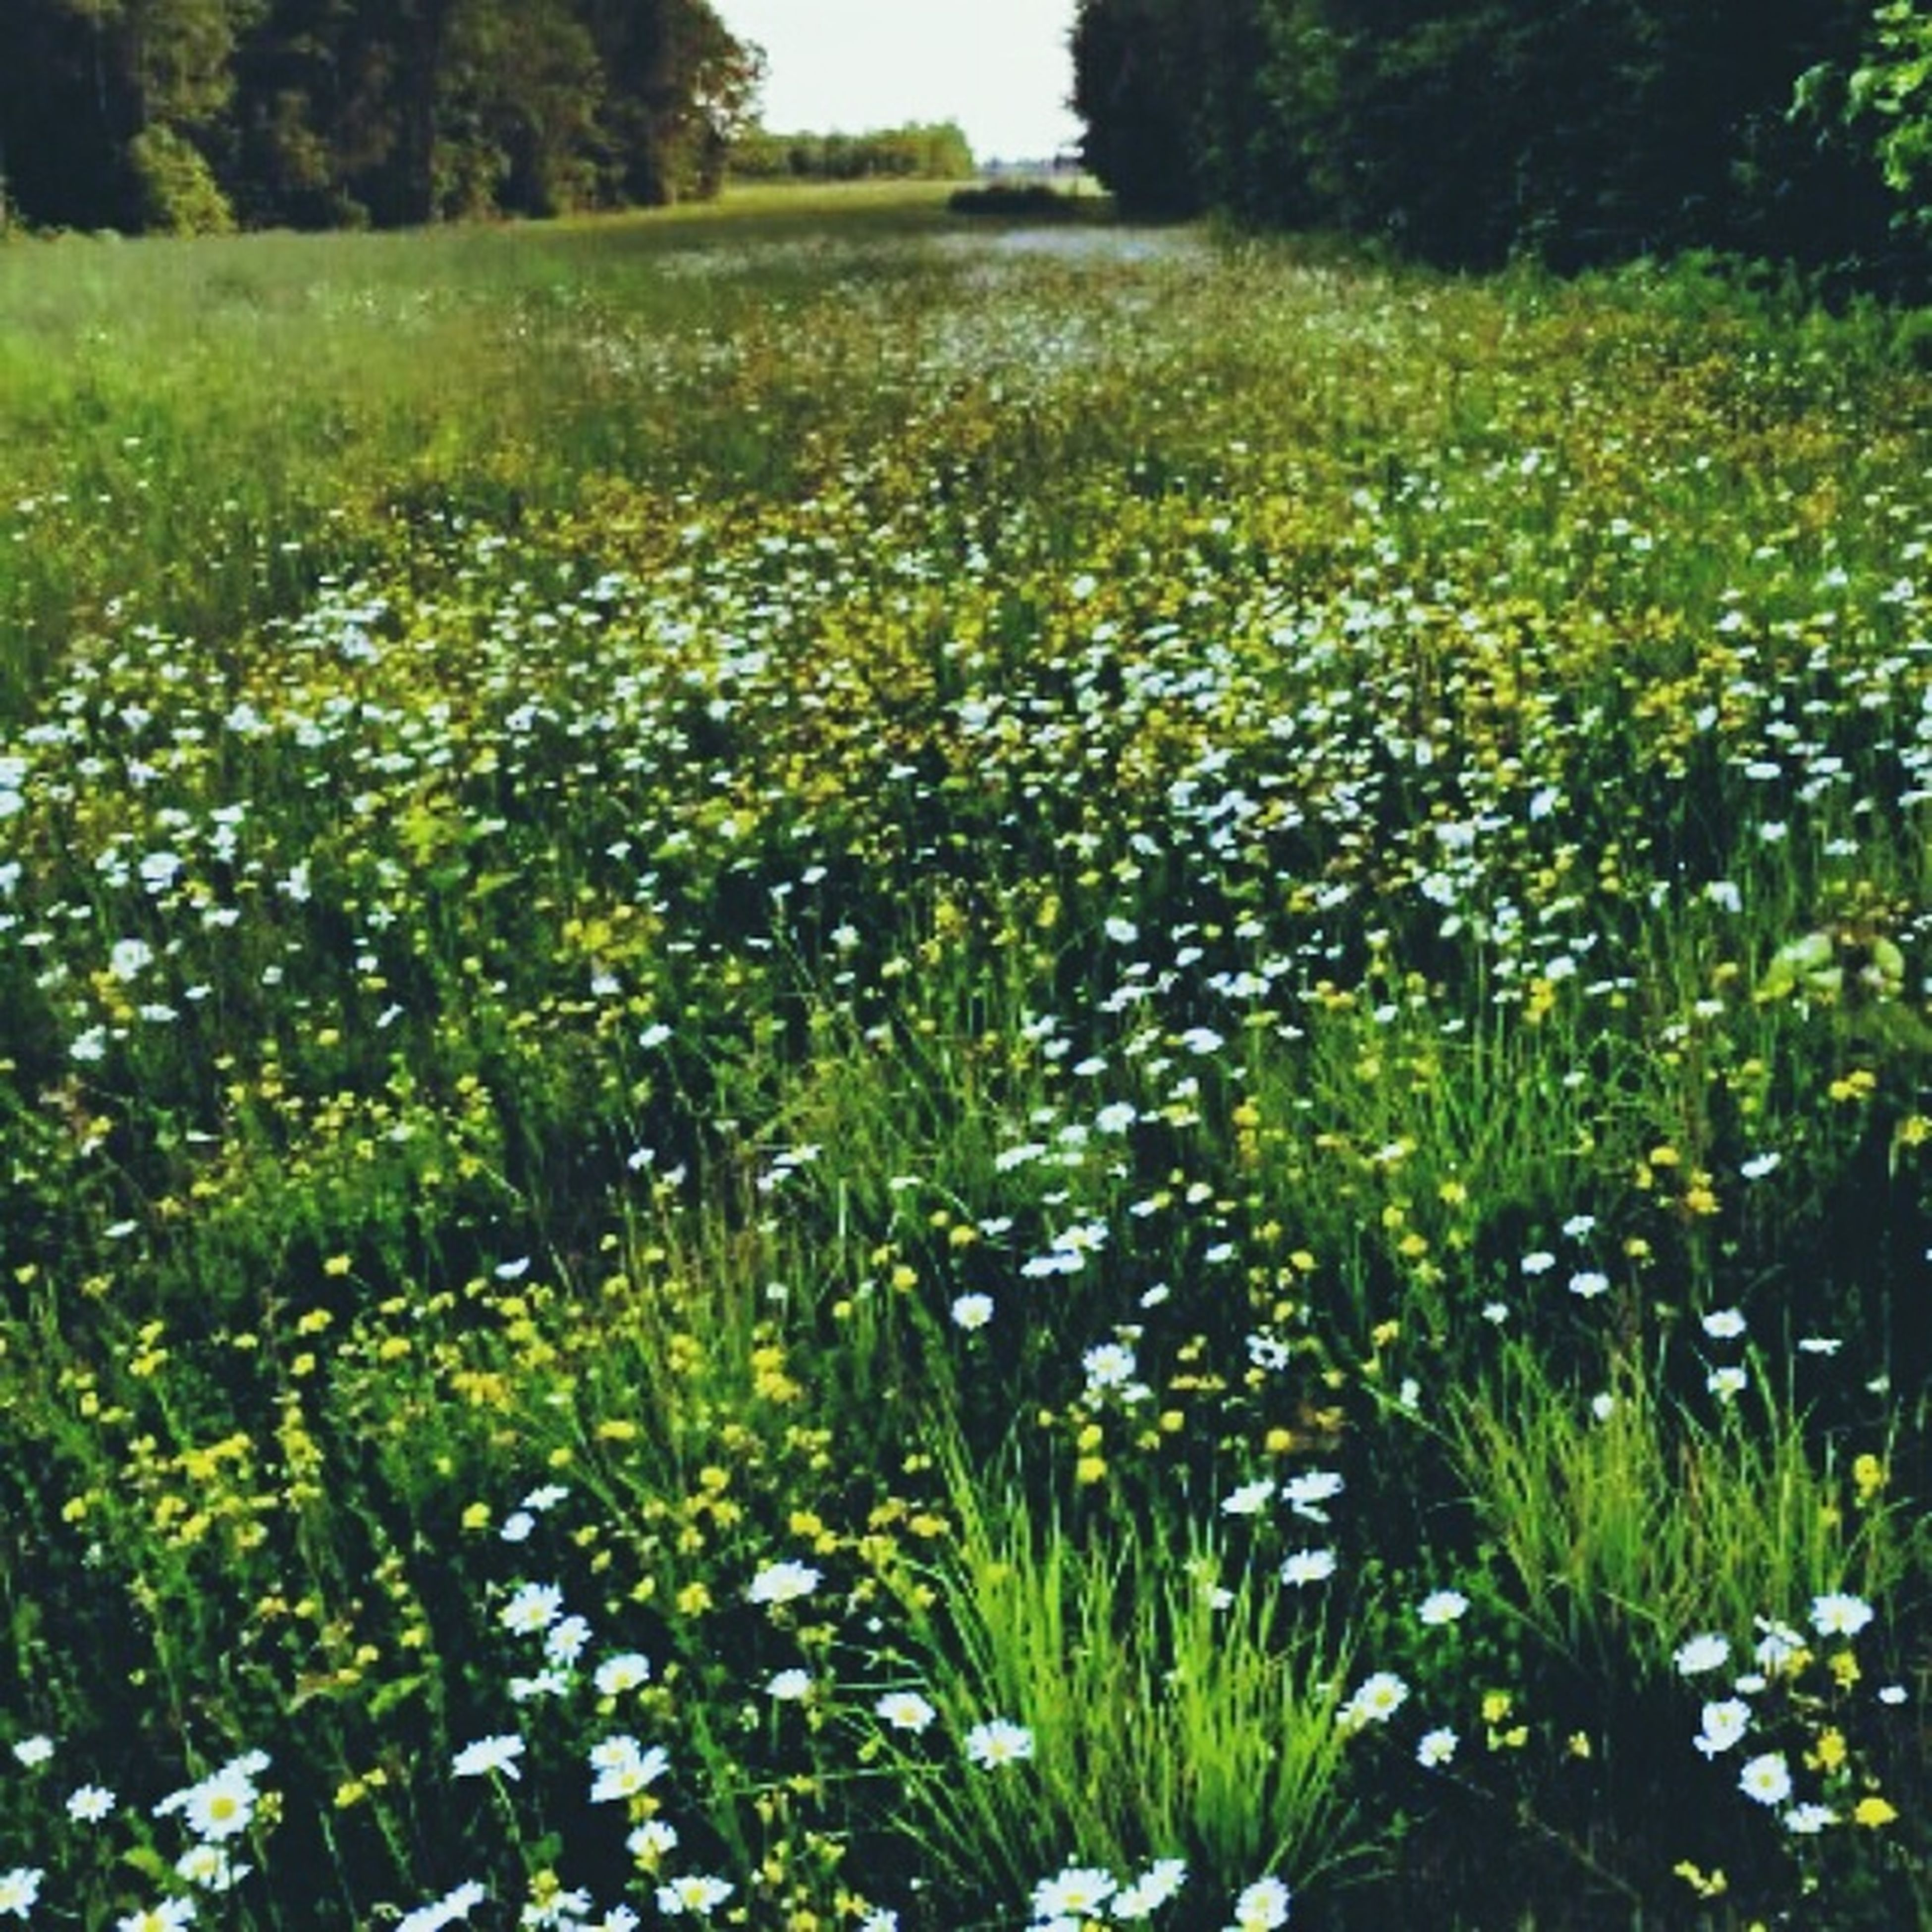 flower, growth, freshness, beauty in nature, field, plant, nature, fragility, green color, grass, blooming, tranquility, tranquil scene, in bloom, petal, wildflower, landscape, sunlight, day, outdoors